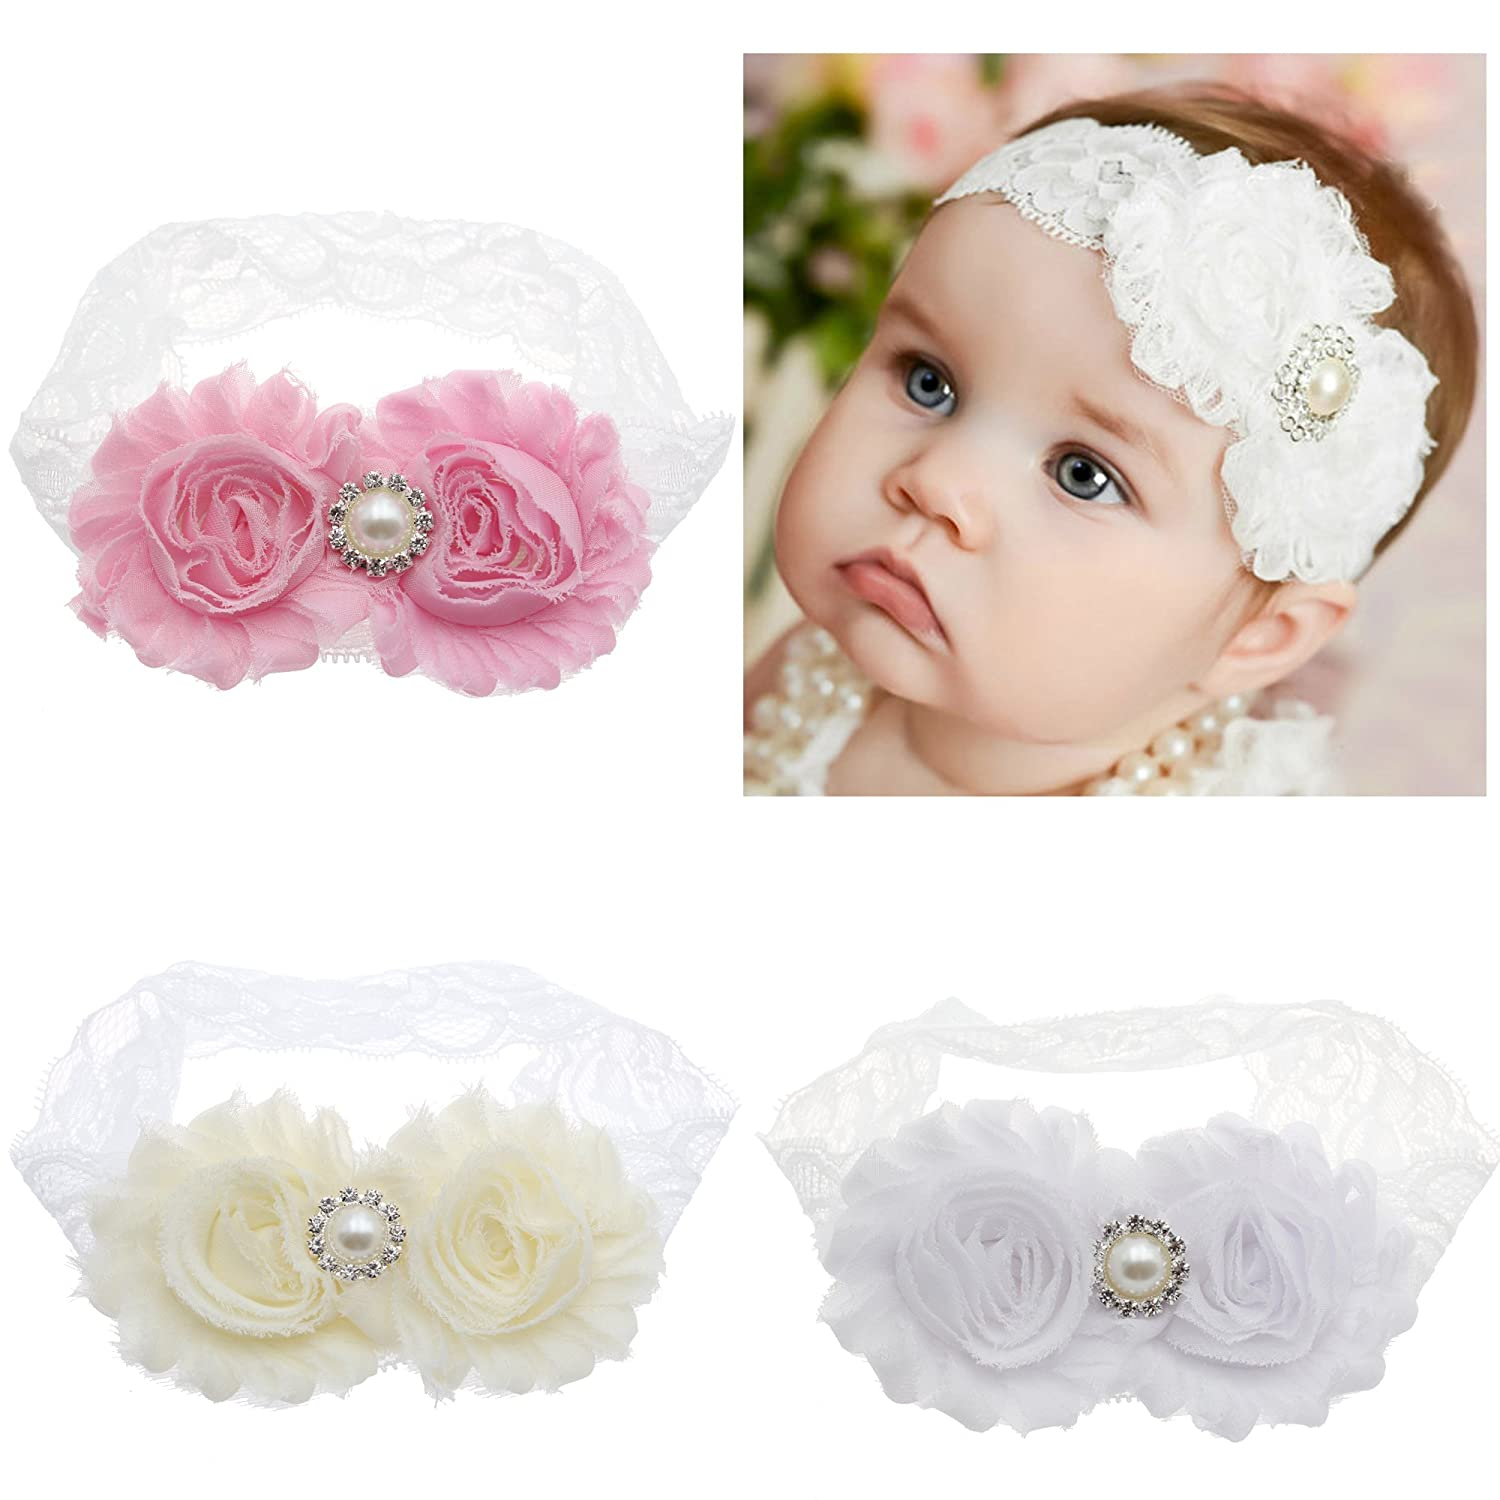 2707d8a1ec7 Lebo baby baptism headbands baby girl lace headbands with bows clothing jpg  1500x1500 Baby girl lace